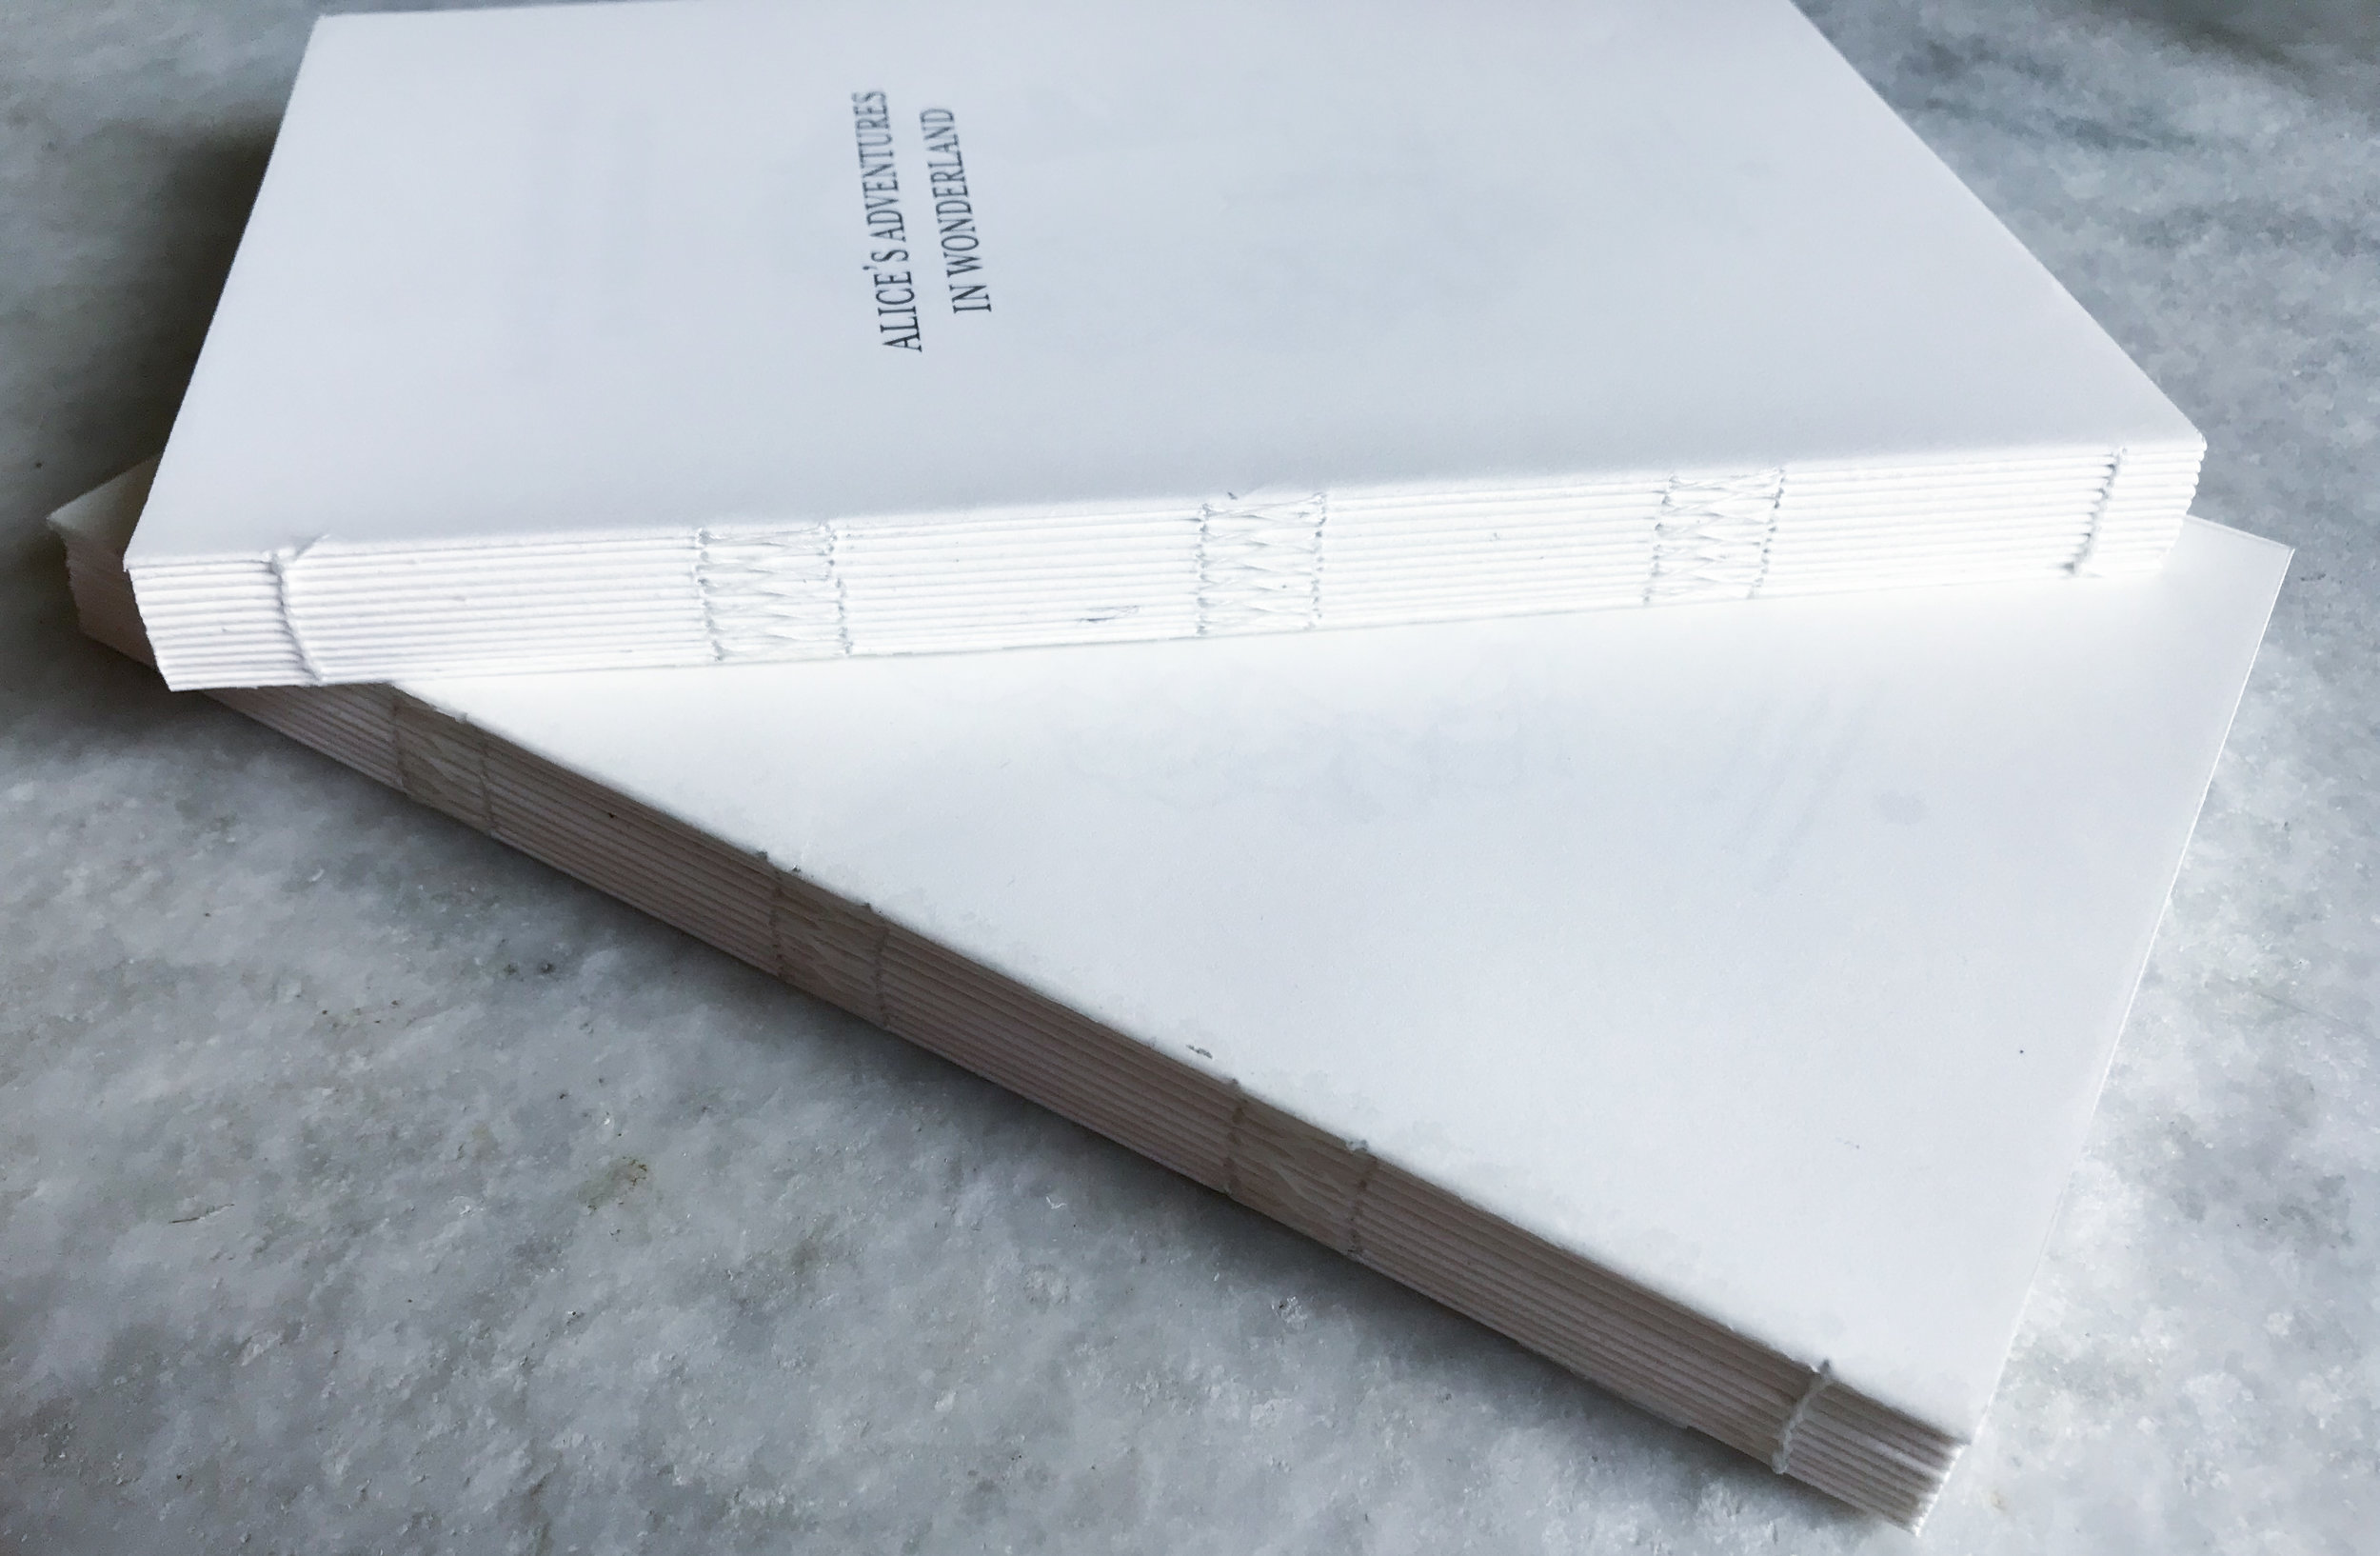 Glued spine with stitching